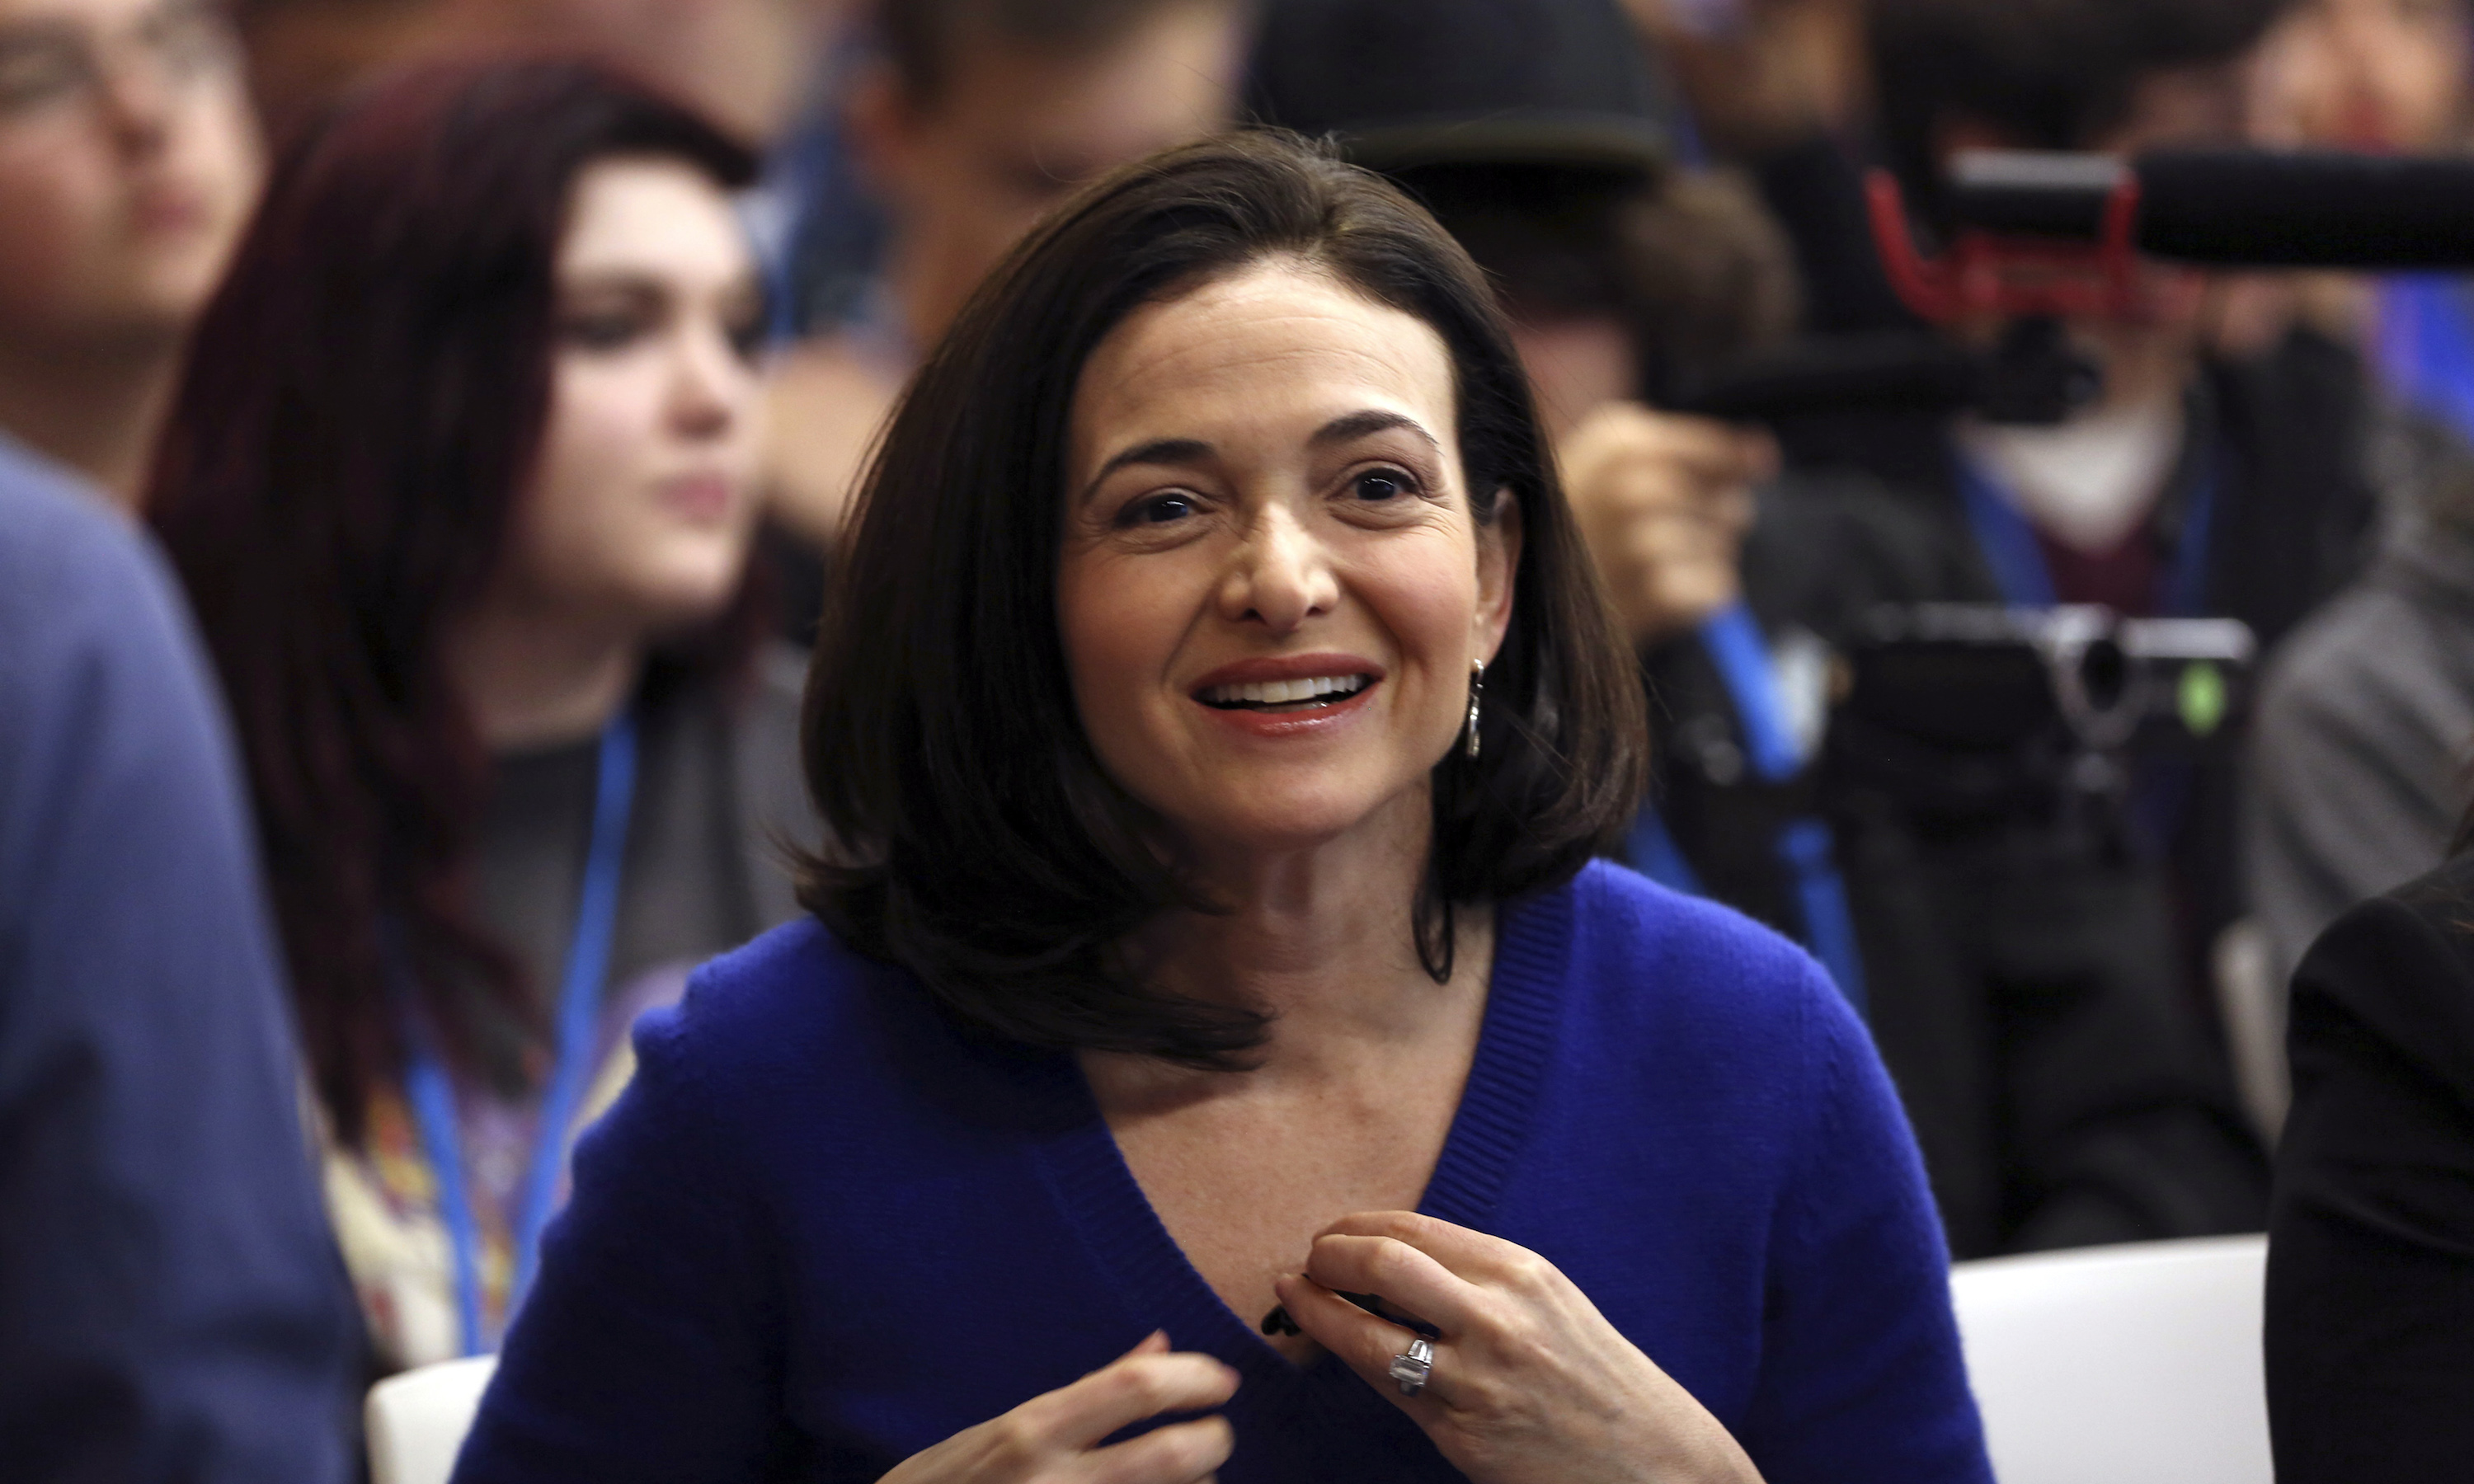 Facebook COO Sheryl Sandberg looks on at the Facebook headquarters in Menlo Park, California February 10, 2015. REUTERS/Robert Galbraith  (UNITED STATES - Tags: SCIENCE TECHNOLOGY BUSINESS SOCIETY) - RTR4P2RY